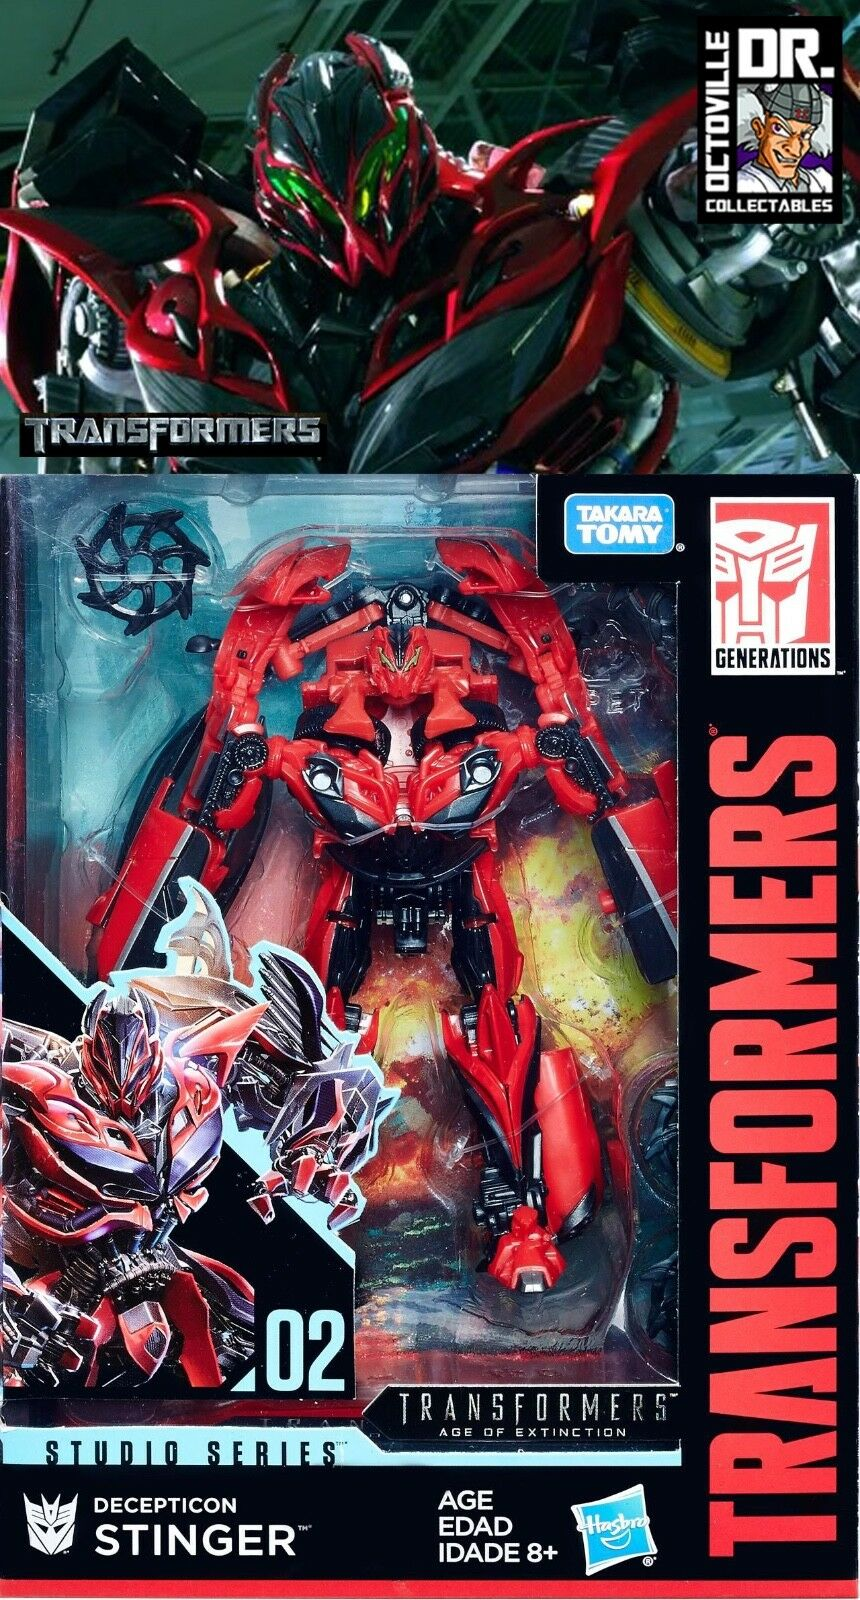 Transformers Studio Series 02 Deluxe Age of Extinction Stinger Brand New